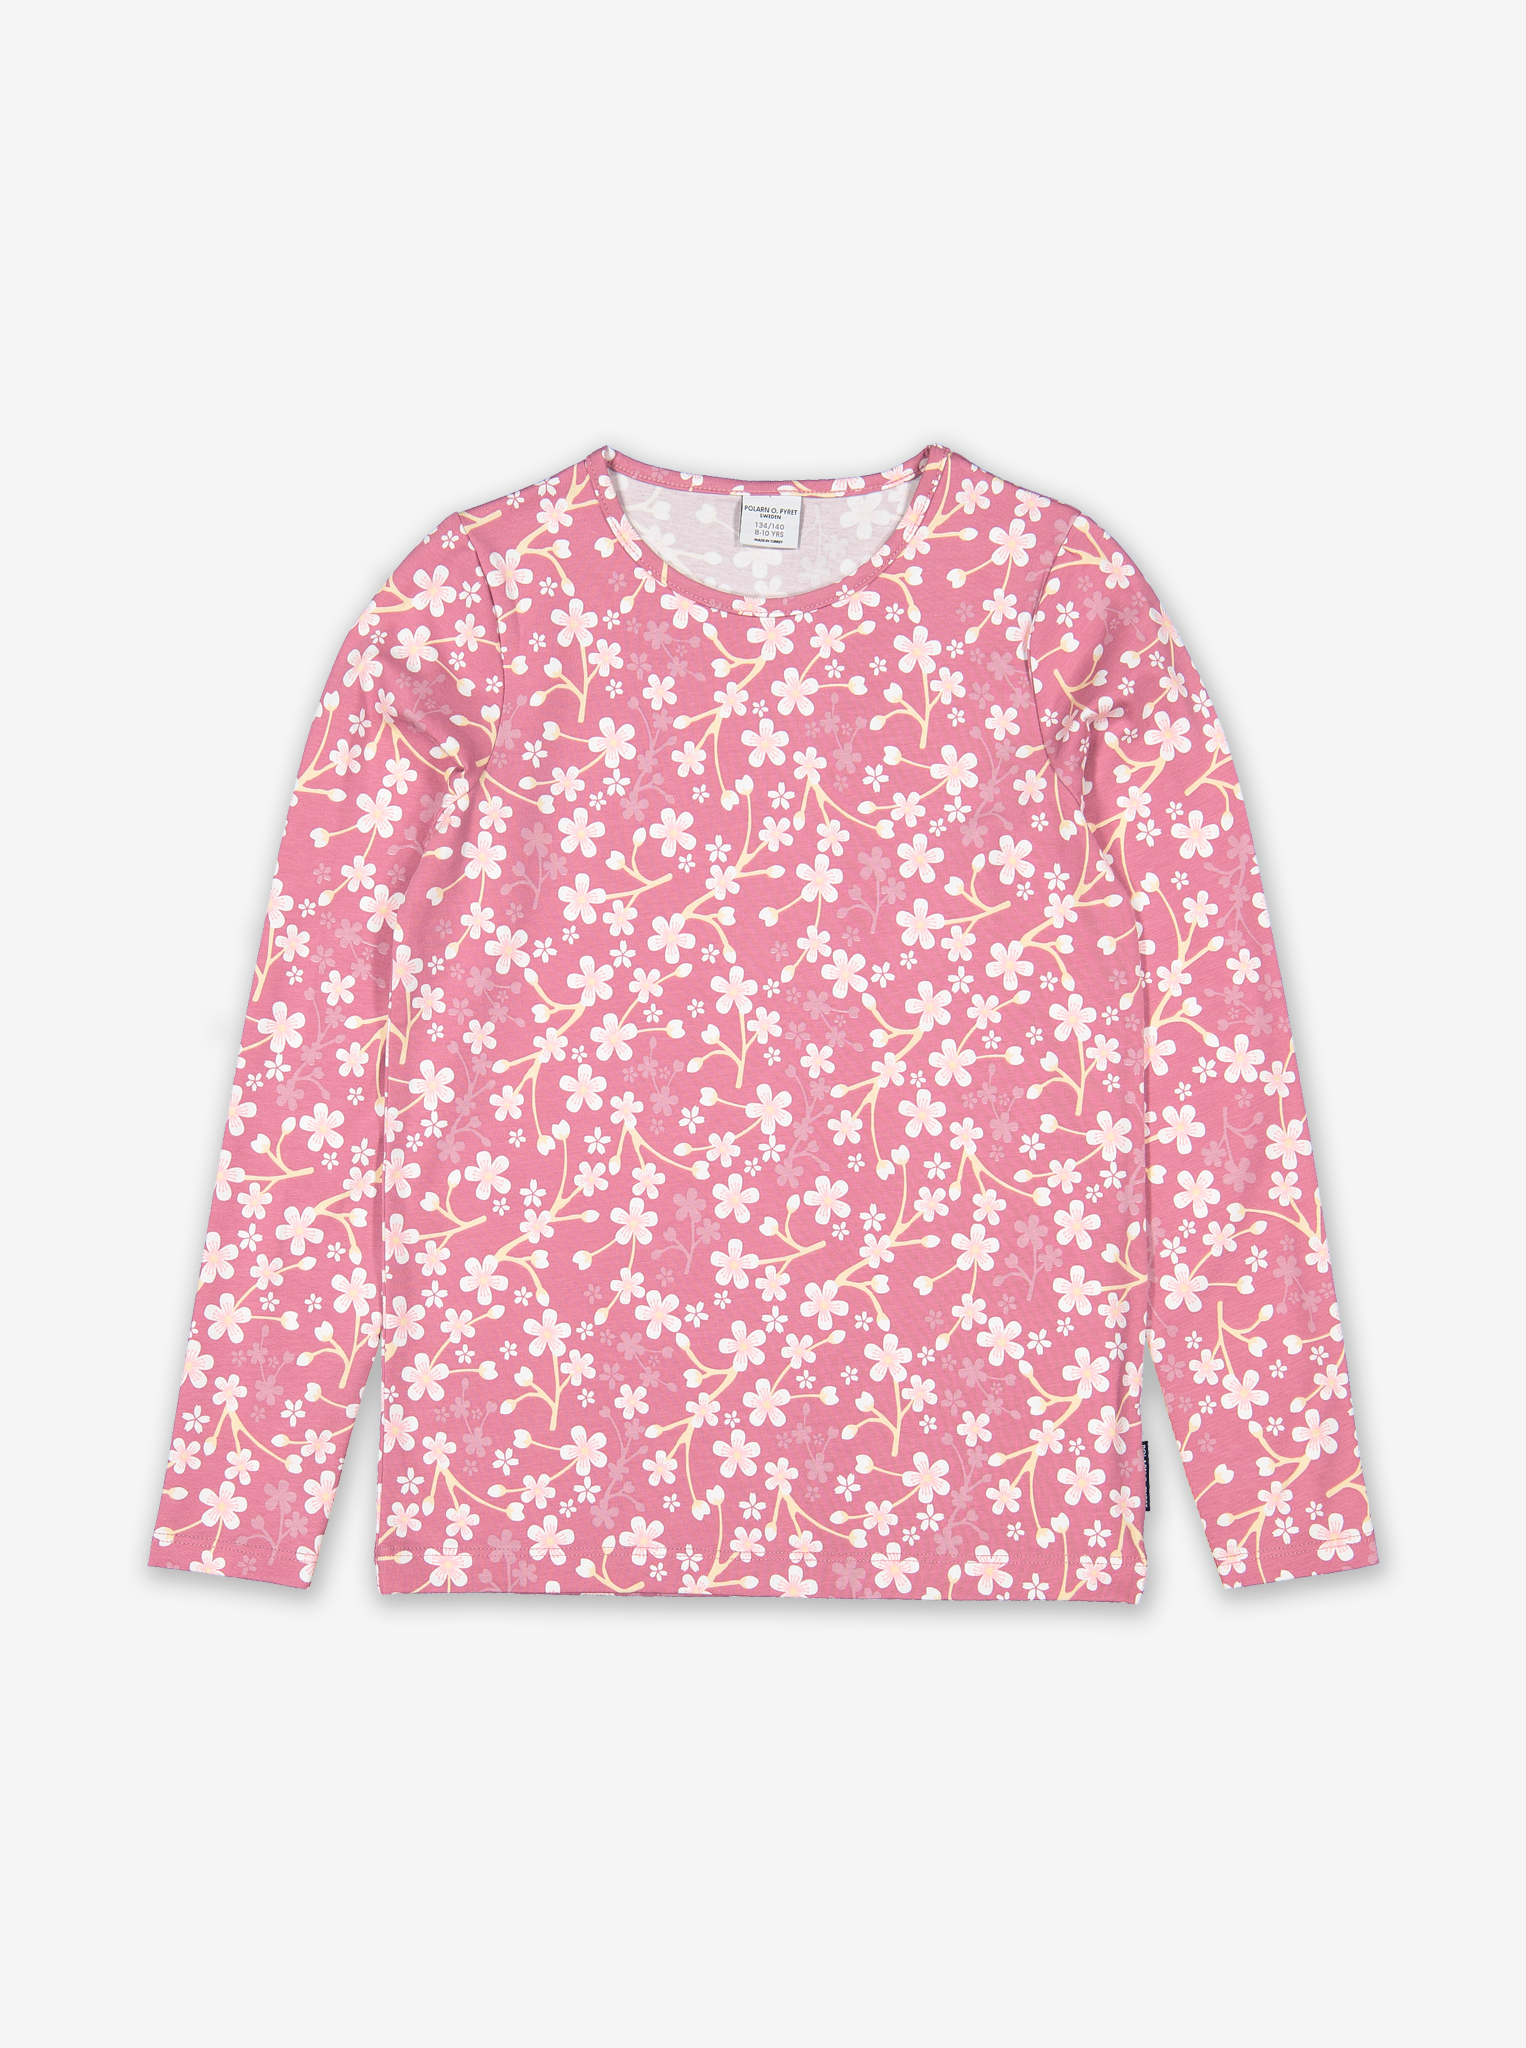 Blossom Print Kids Top-Girl-6-12y-Pink